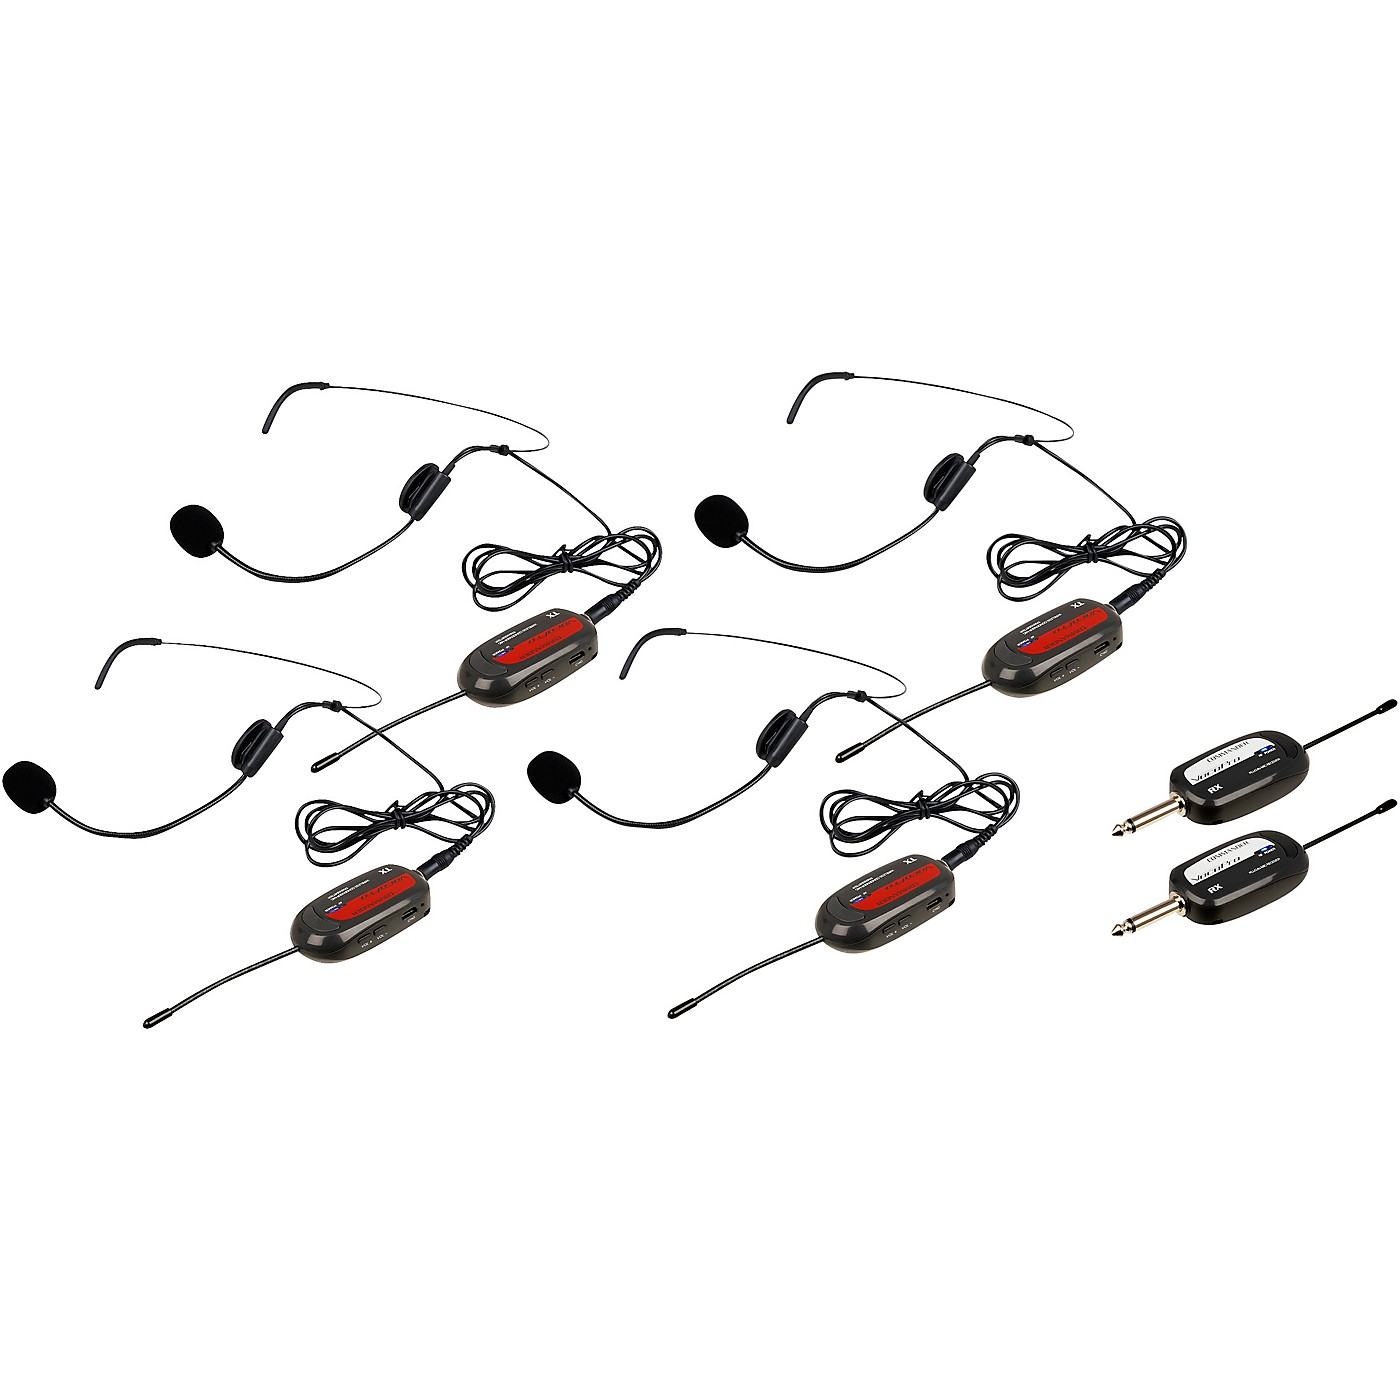 Vocopro Commander-Play-4 4 UHF Wireless Headset Mics with Receivers thumbnail